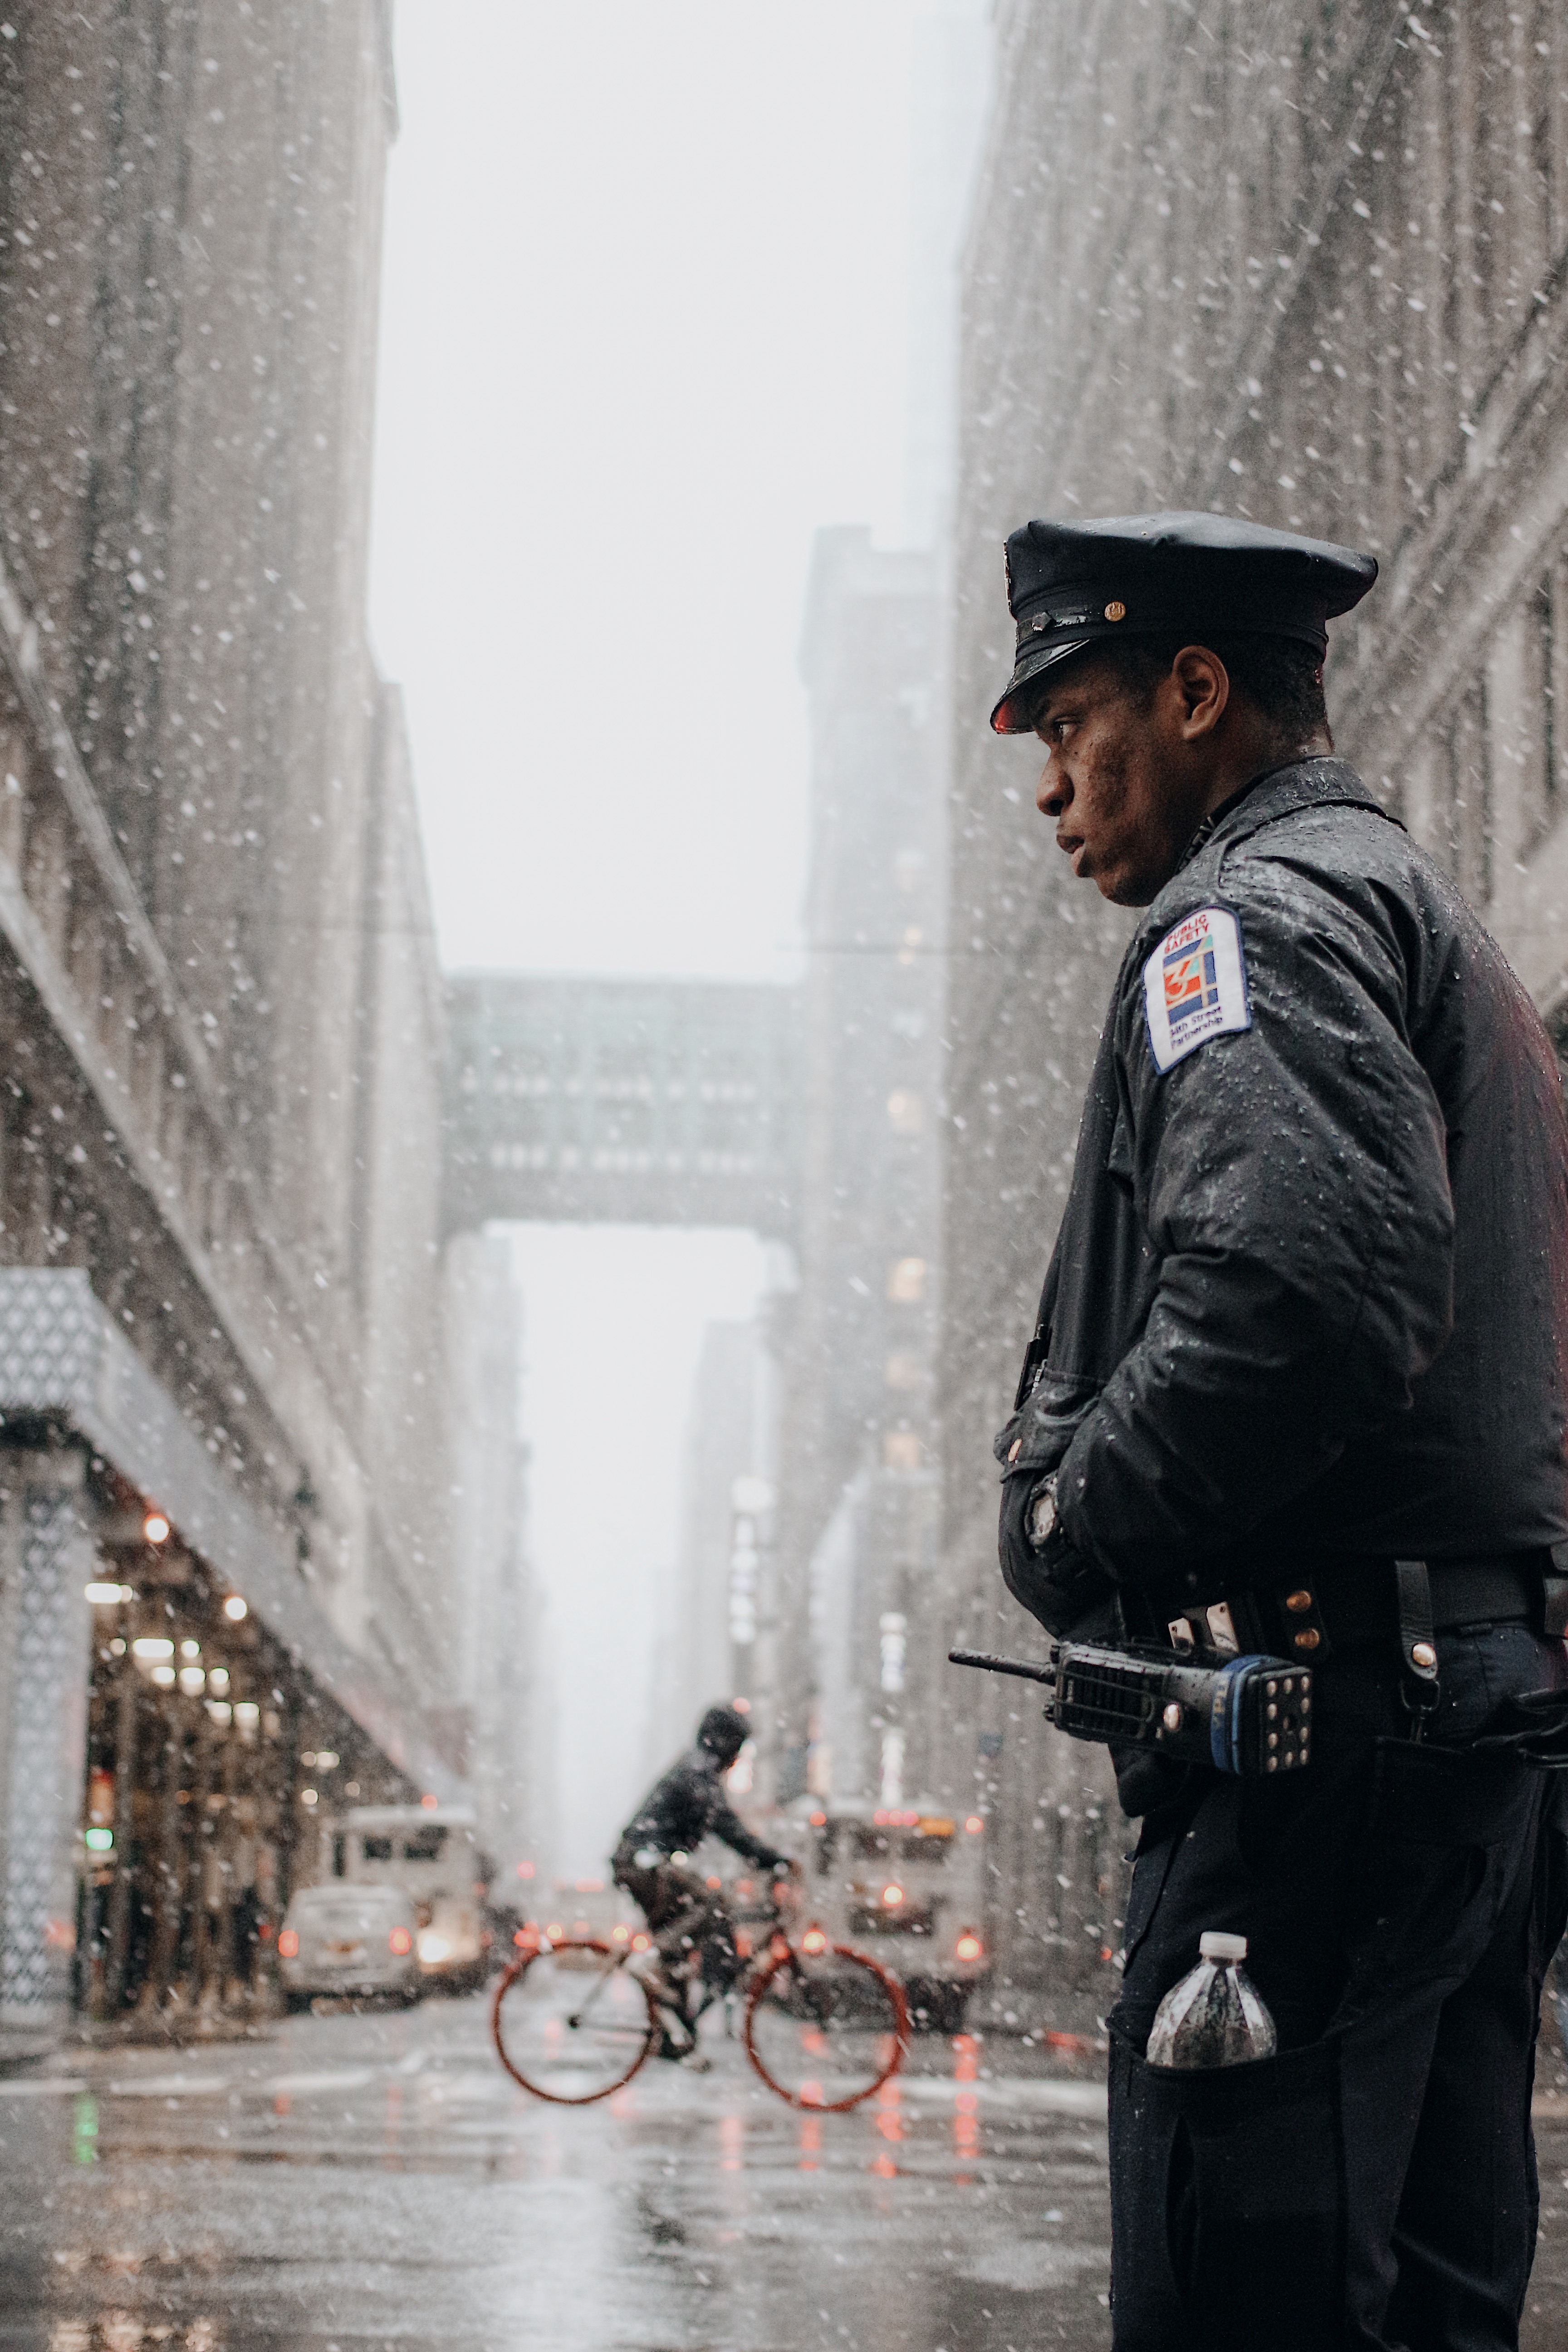 Police Officer In Snowstorm